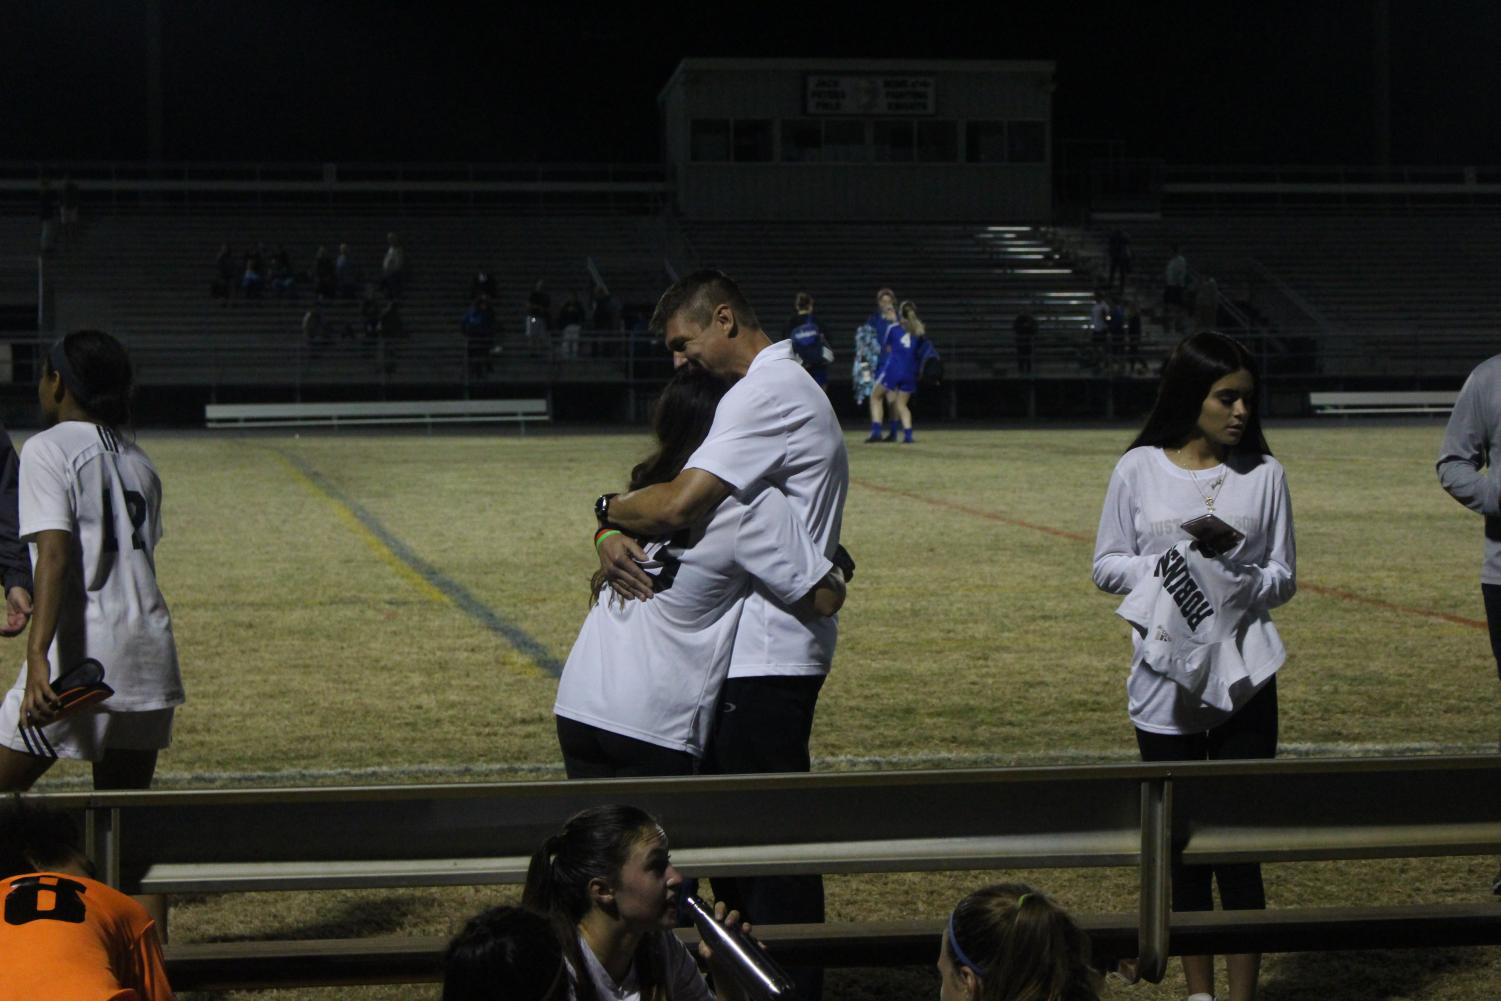 Captain Elisa Toghranegar ('18) hugs Helms in his last game coaching as the Lady Knights fall 3-0 to Osceola.